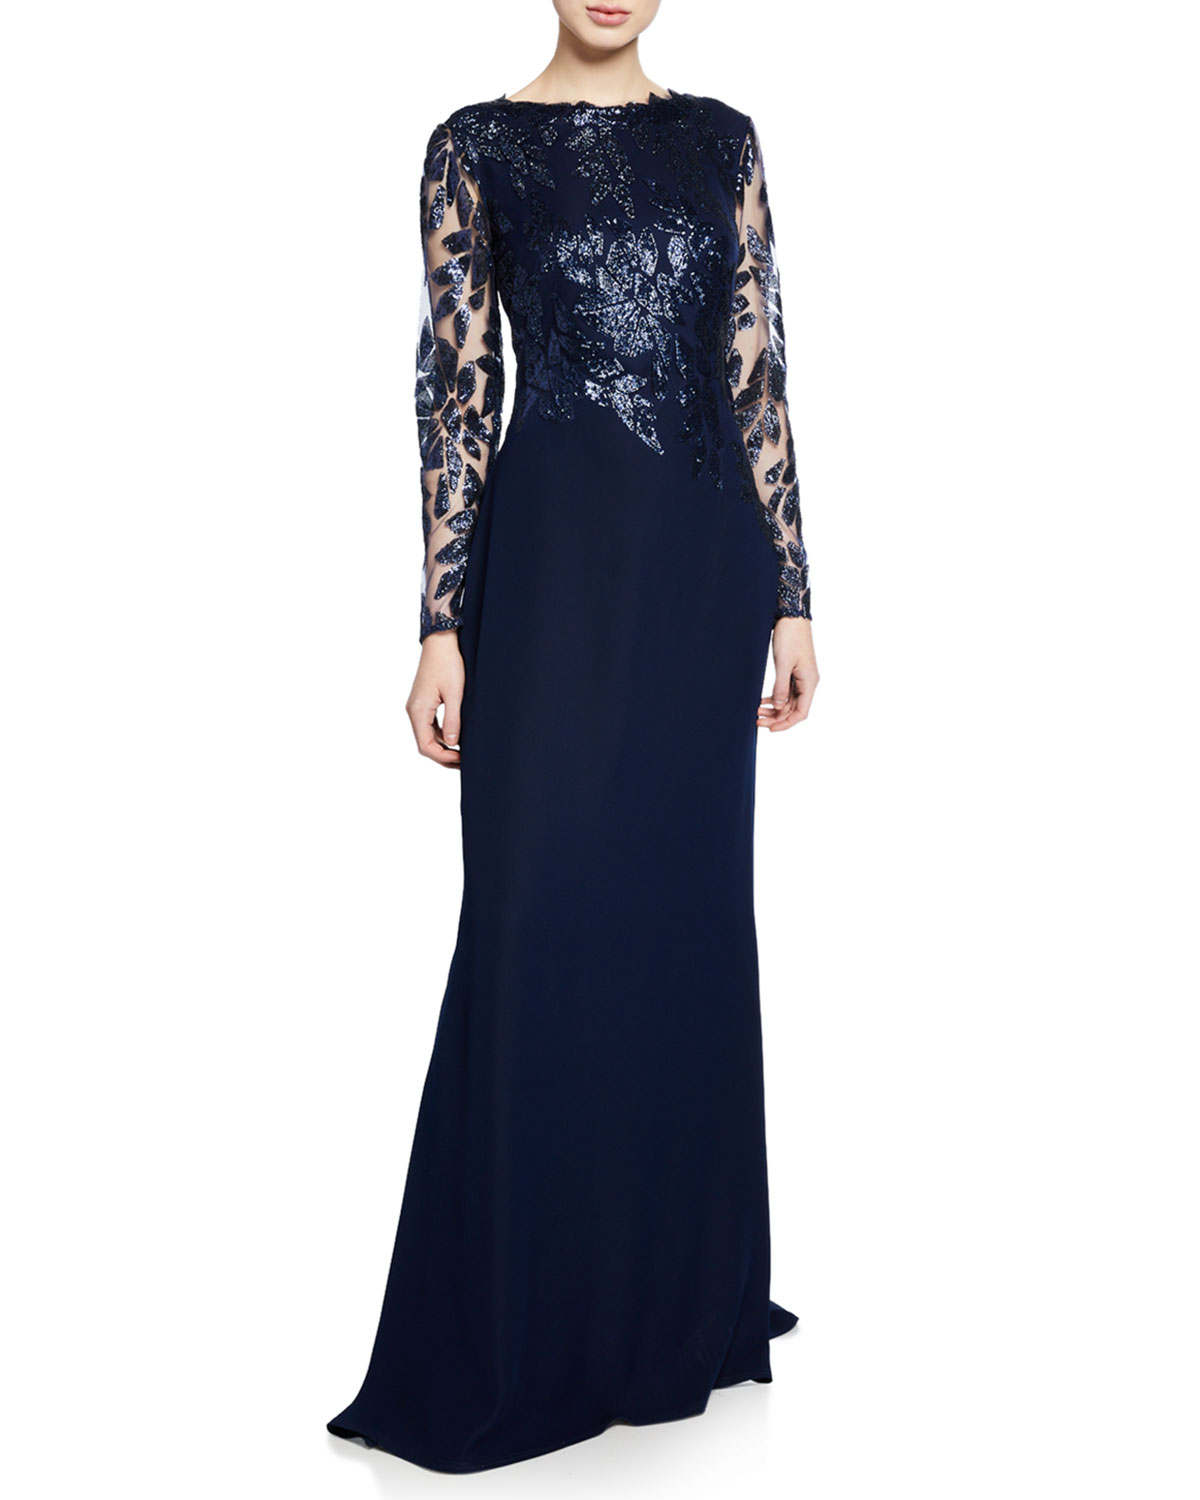 Tadashi Shoji LONG-SLEEVE CREPE GOWN WITH SEQUINED BODICE & SLEEVES